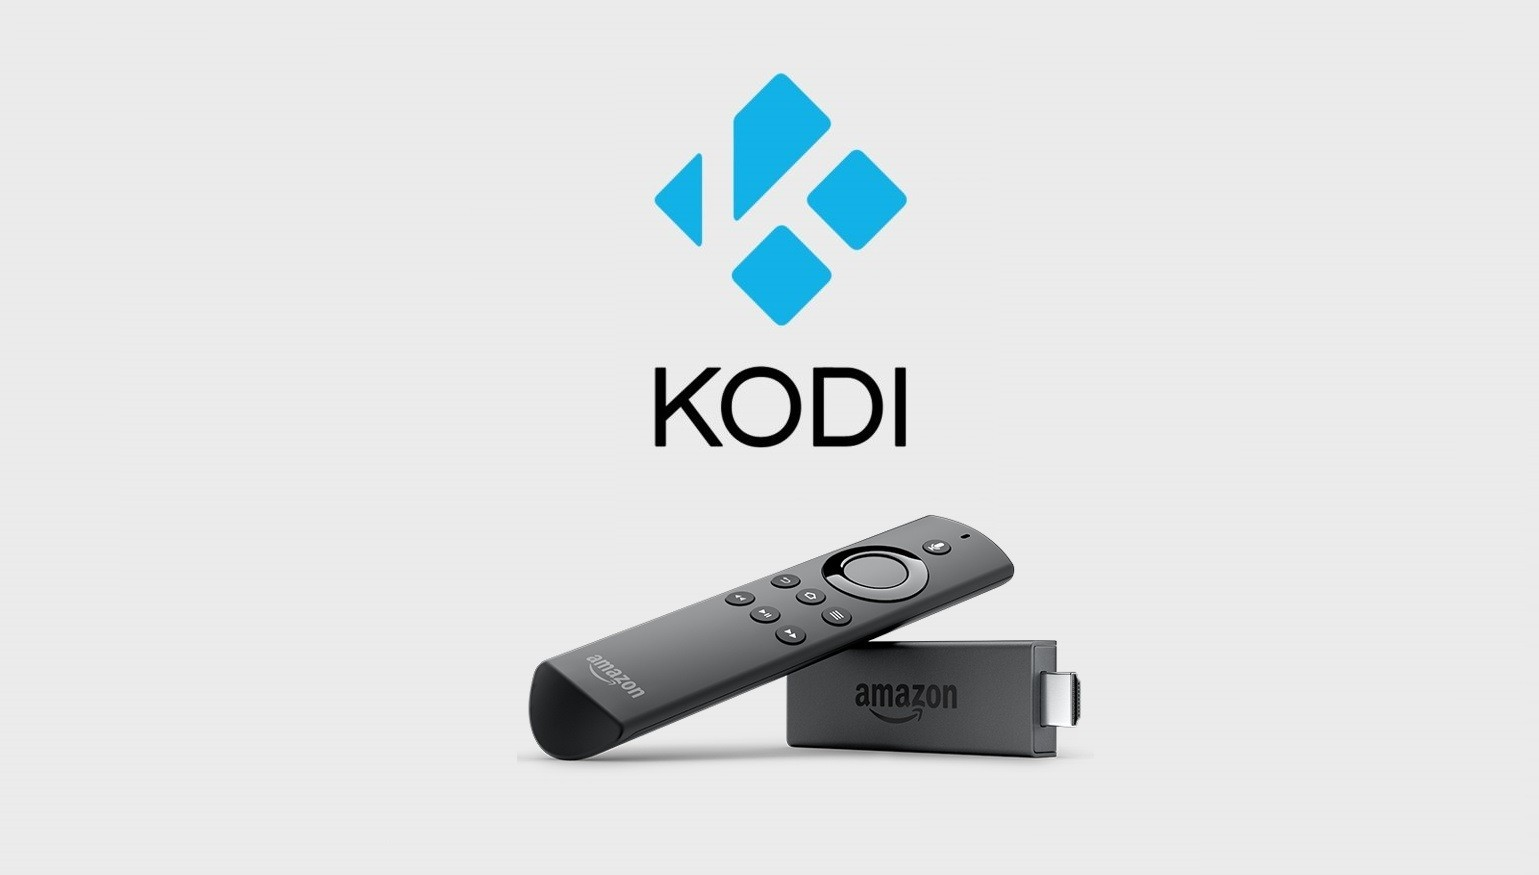 How to install Kodi on Firestick? [2021]